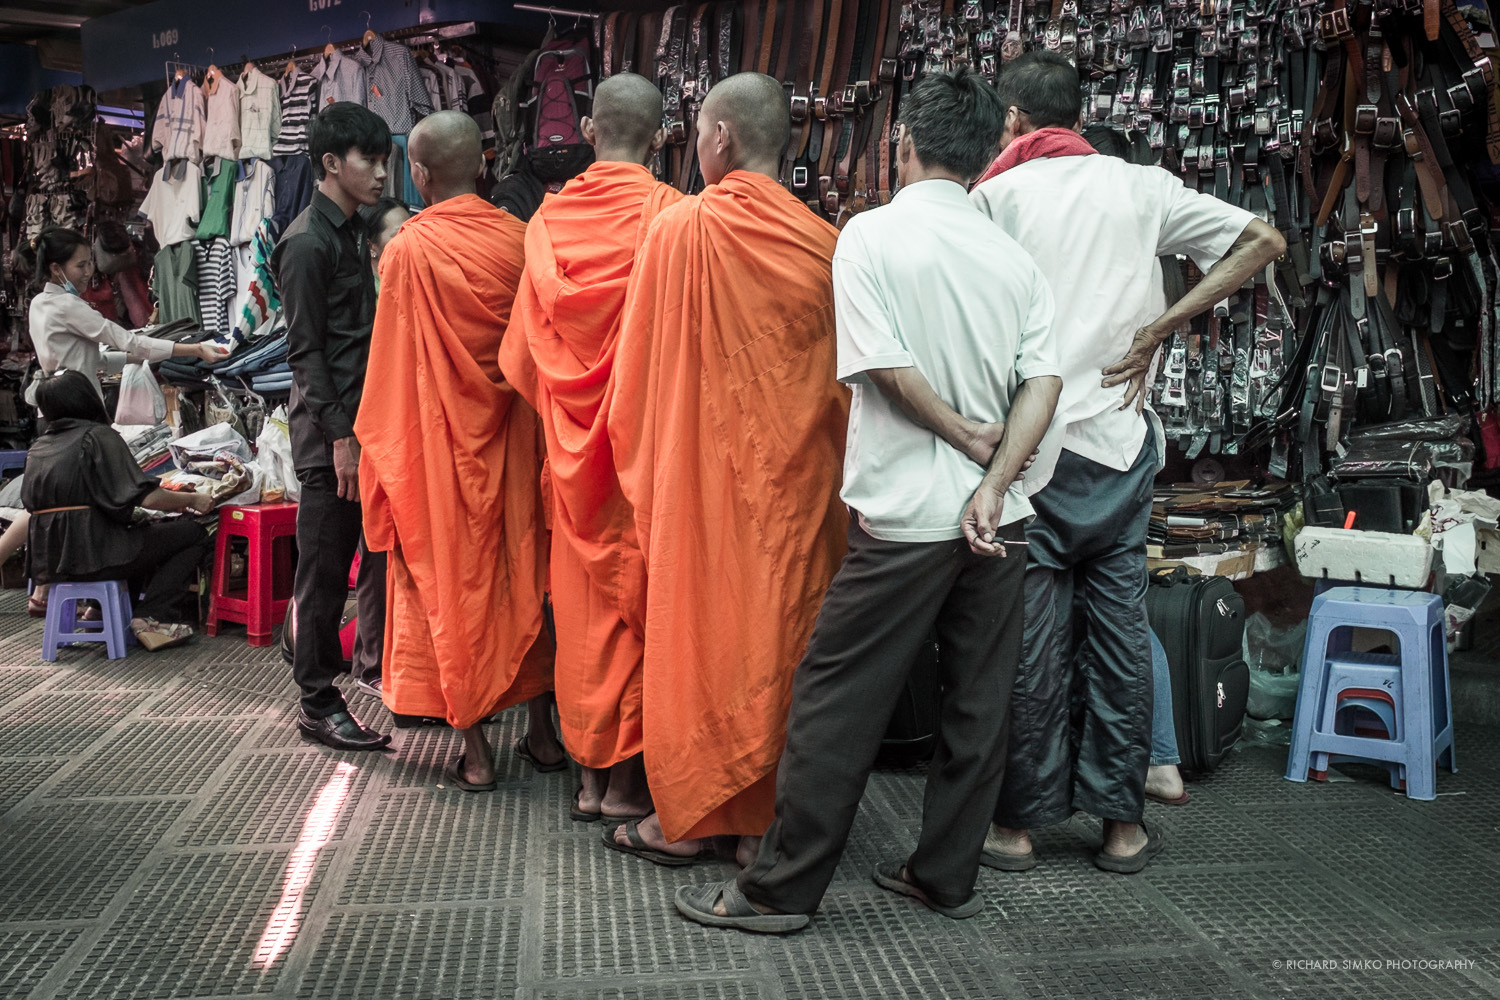 Monks are shopping in Phnom Penh's Central Market